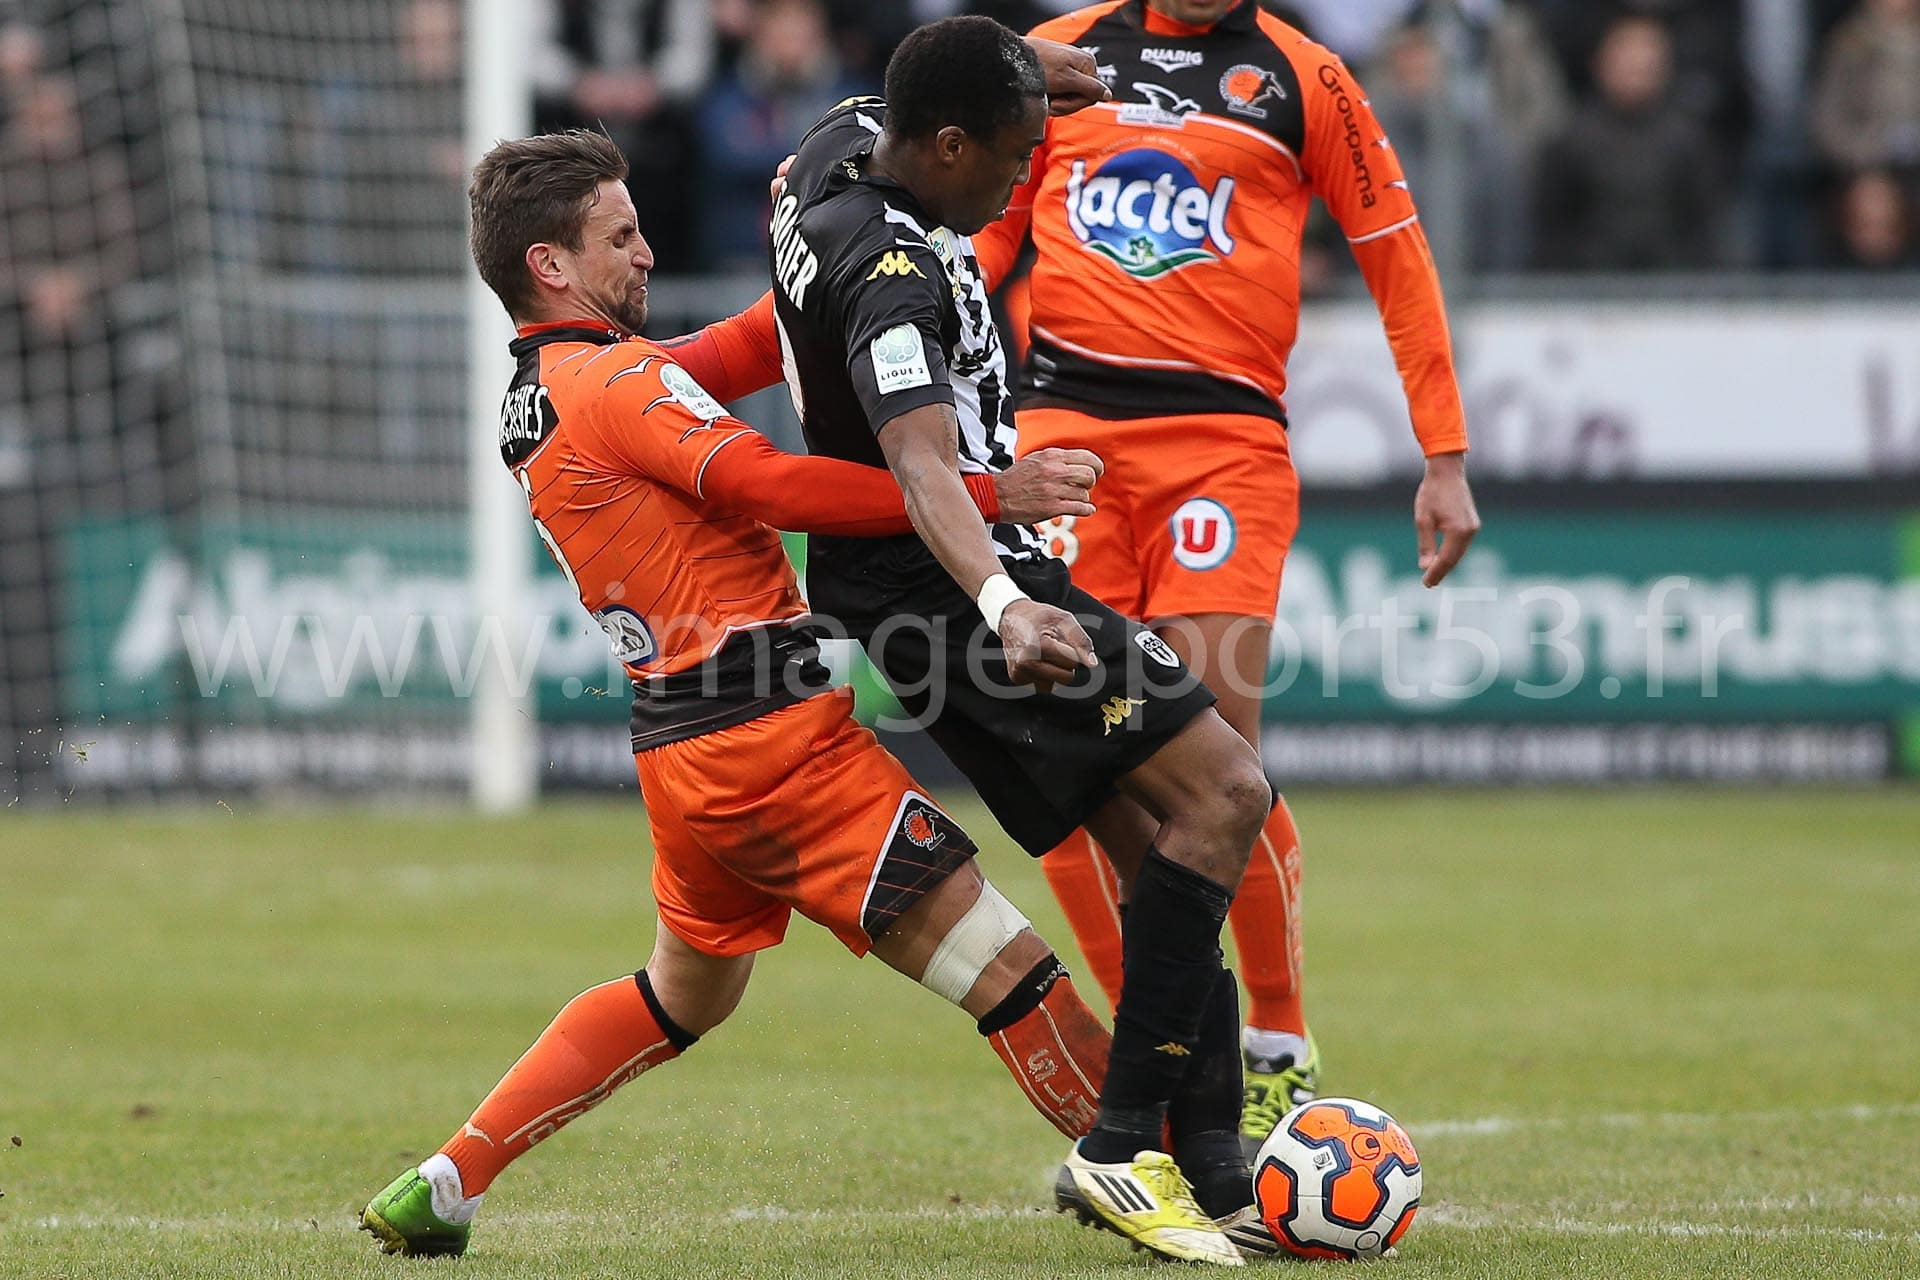 Anthony GONCALVES (Stade Lavallois), Richard SOCRIER (Angers SCO